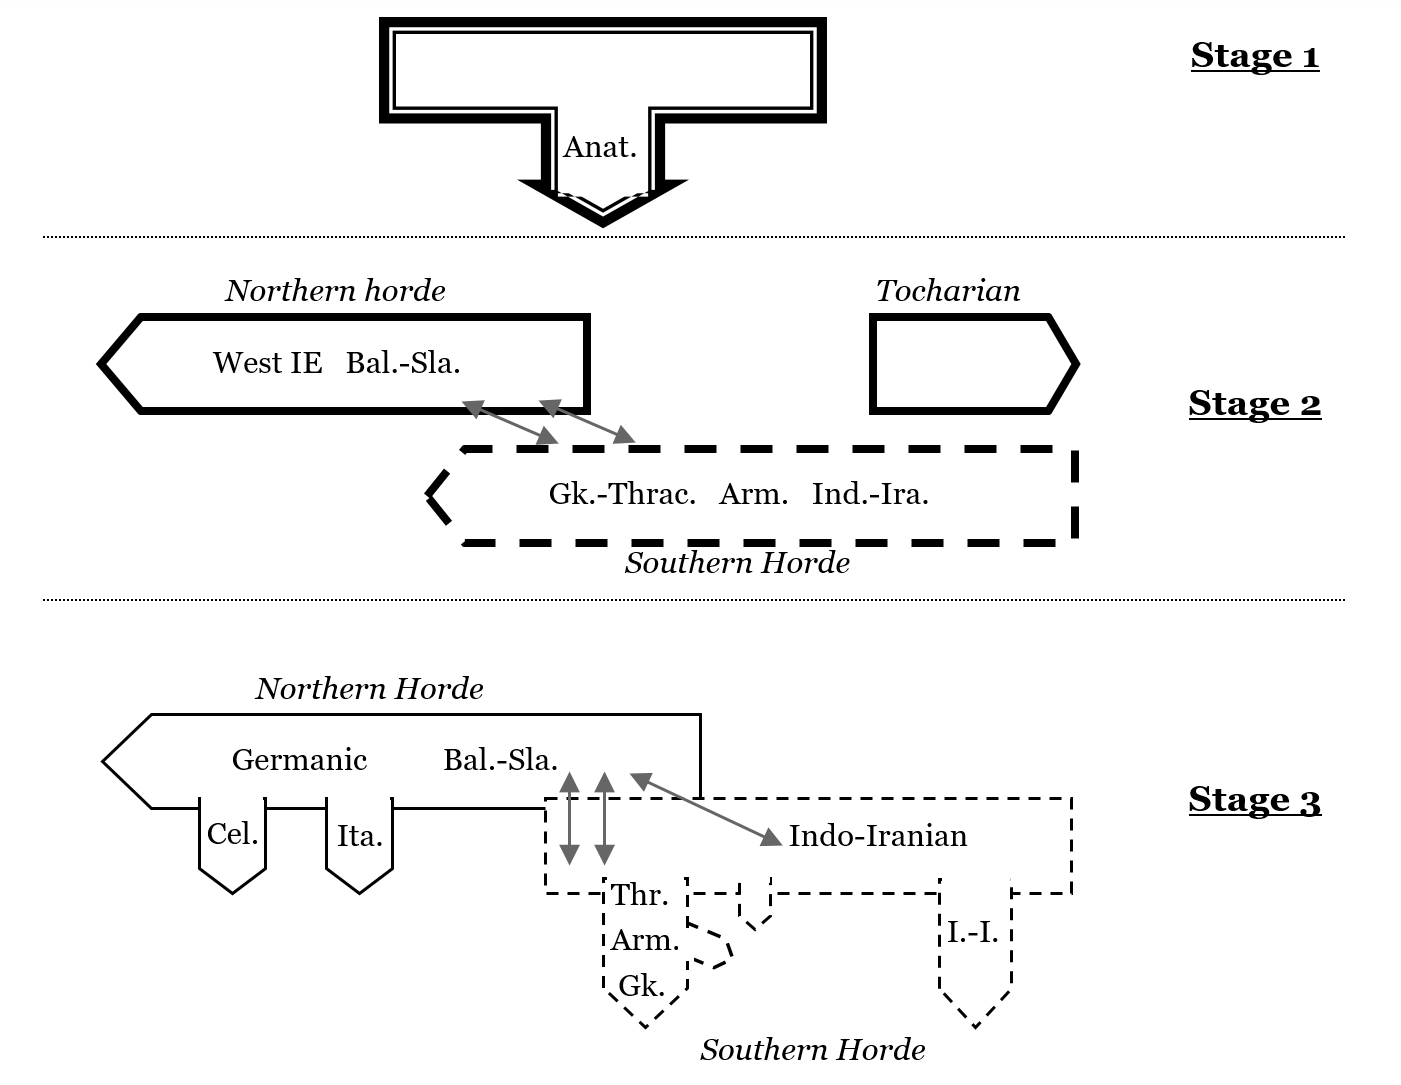 Example of diagram of expansion and relationships of Indo-European languages, based solely on linguistic considerations. Adapted from Adrados (1998).